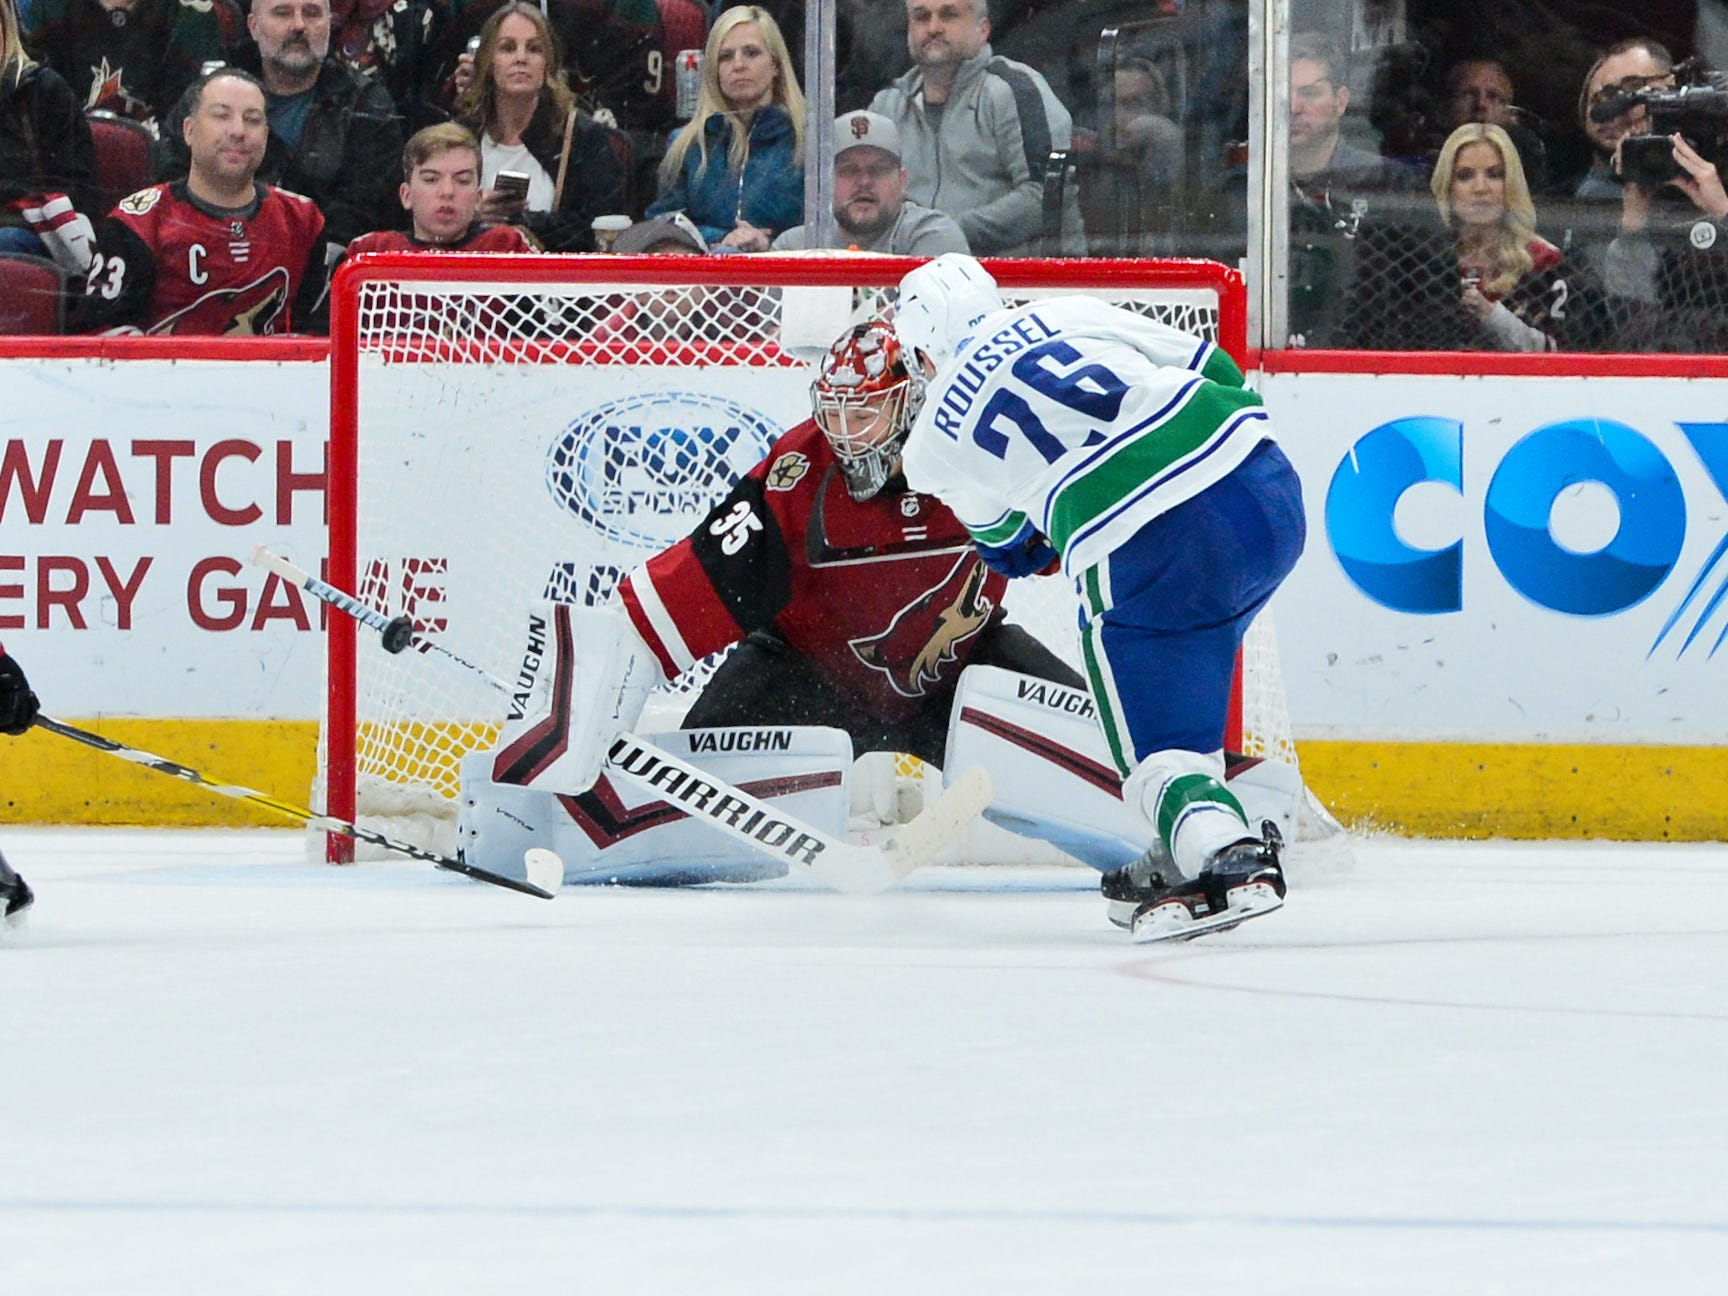 Feb 28, 2019; Glendale, AZ, USA; Arizona Coyotes goaltender Darcy Kuemper (35) makes a save on Vancouver Canucks left wing Antoine Roussel (26) during the second period at Gila River Arena.